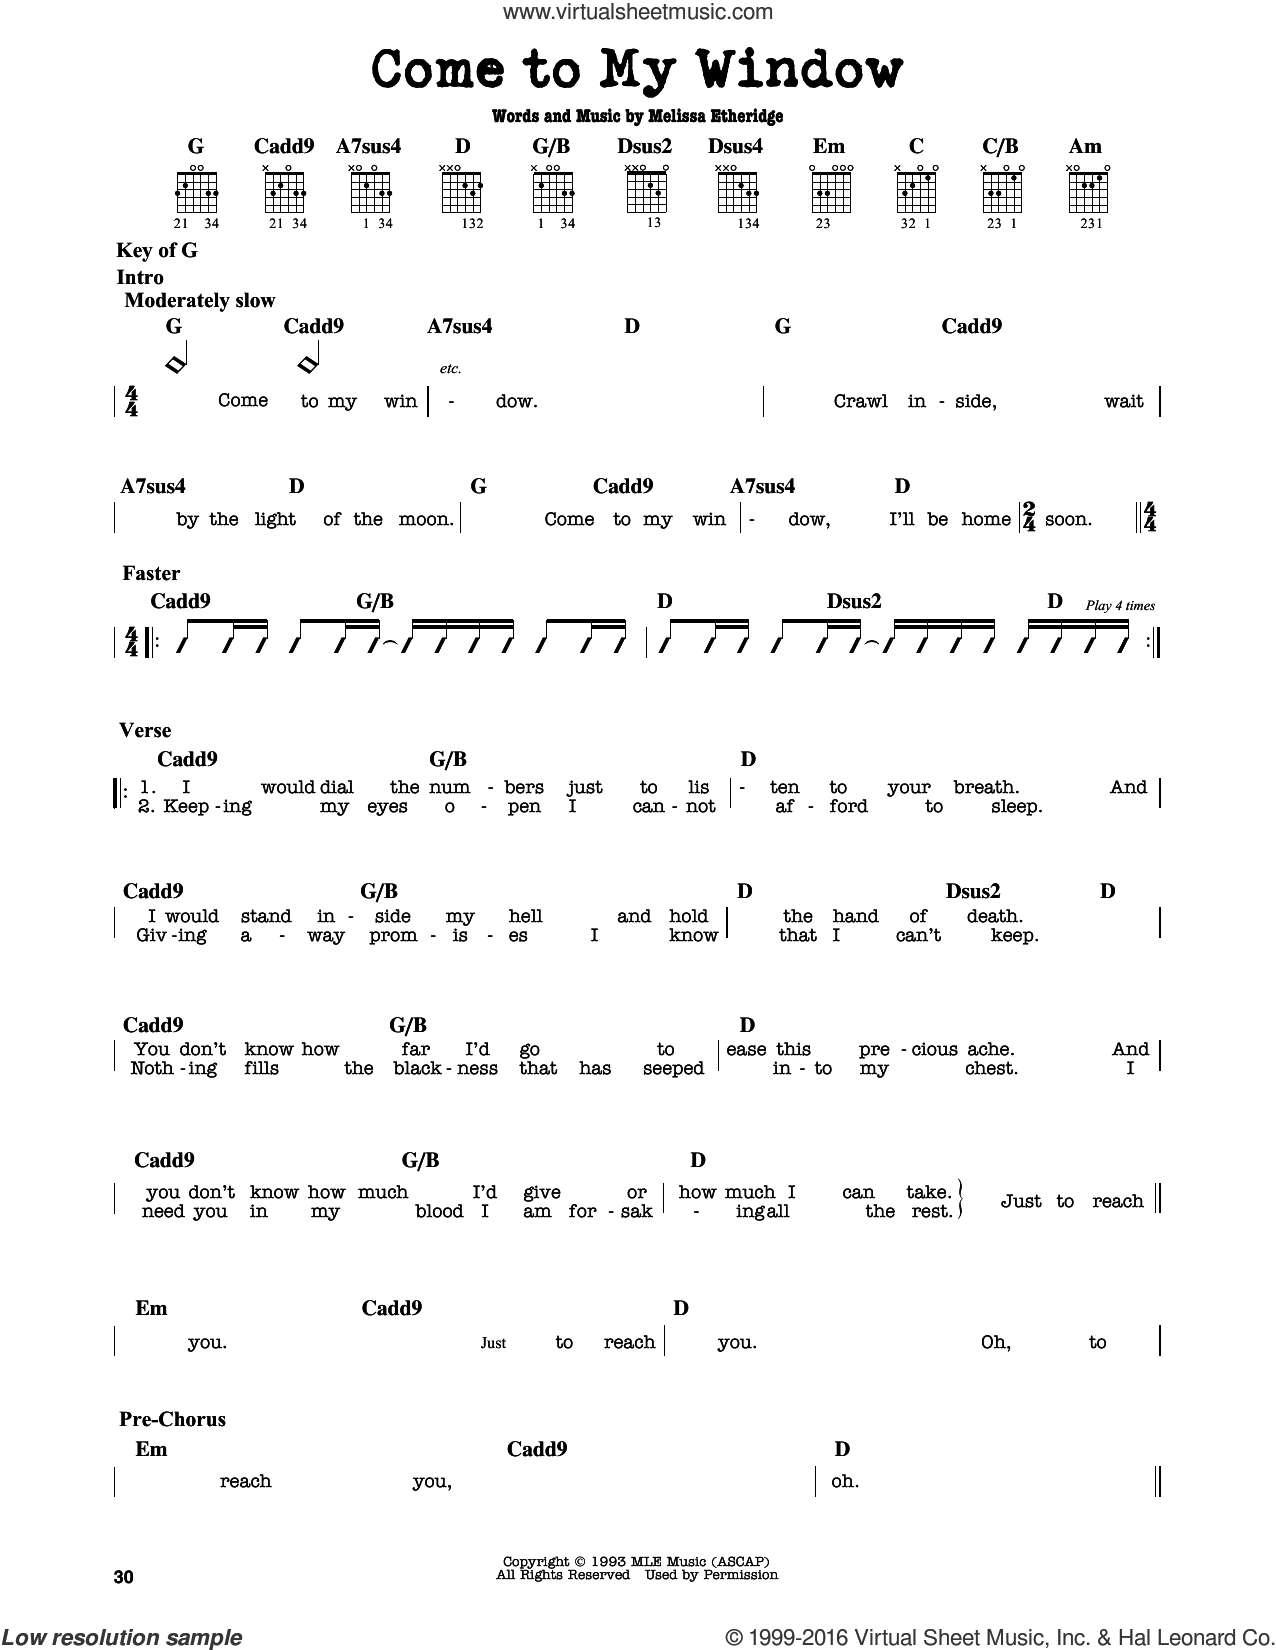 Come To My Window sheet music for guitar solo (lead sheet) by Melissa Etheridge. Score Image Preview.